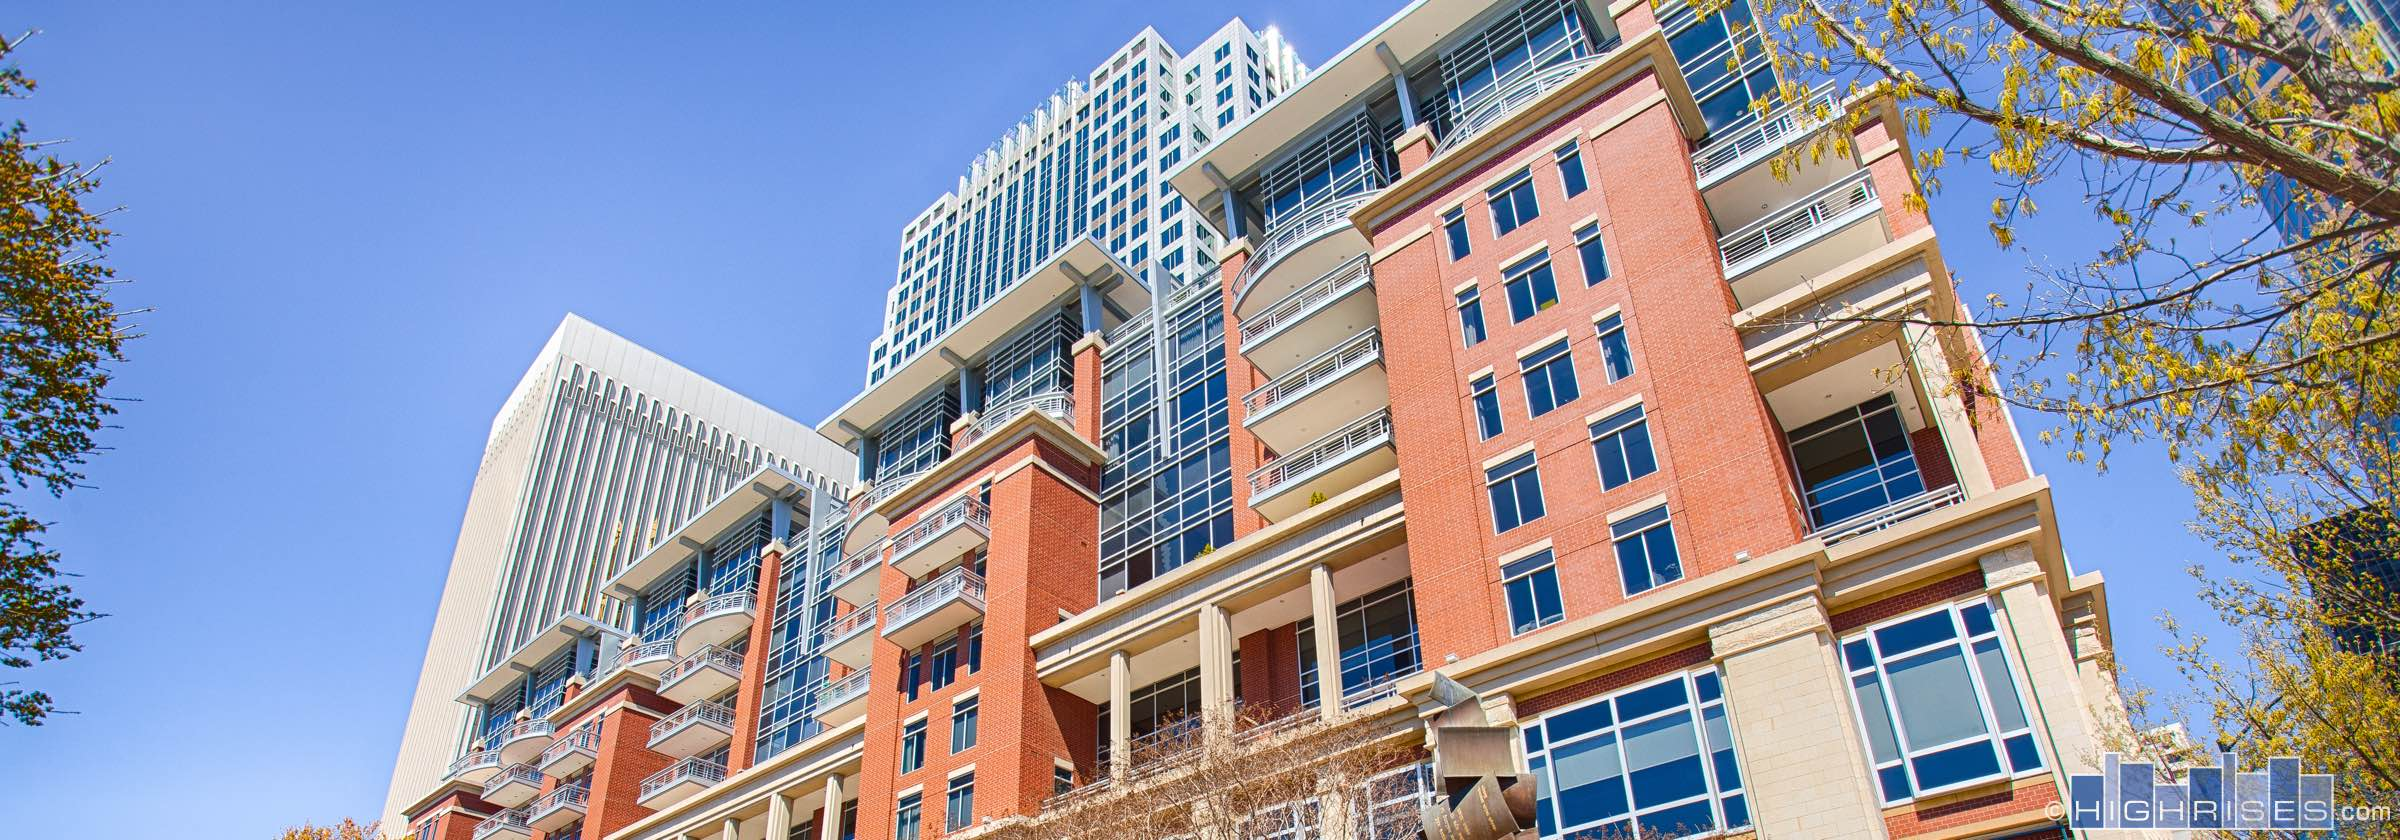 The Ratcliffe Condos Of Charlotte Nc 435 S Tryon St